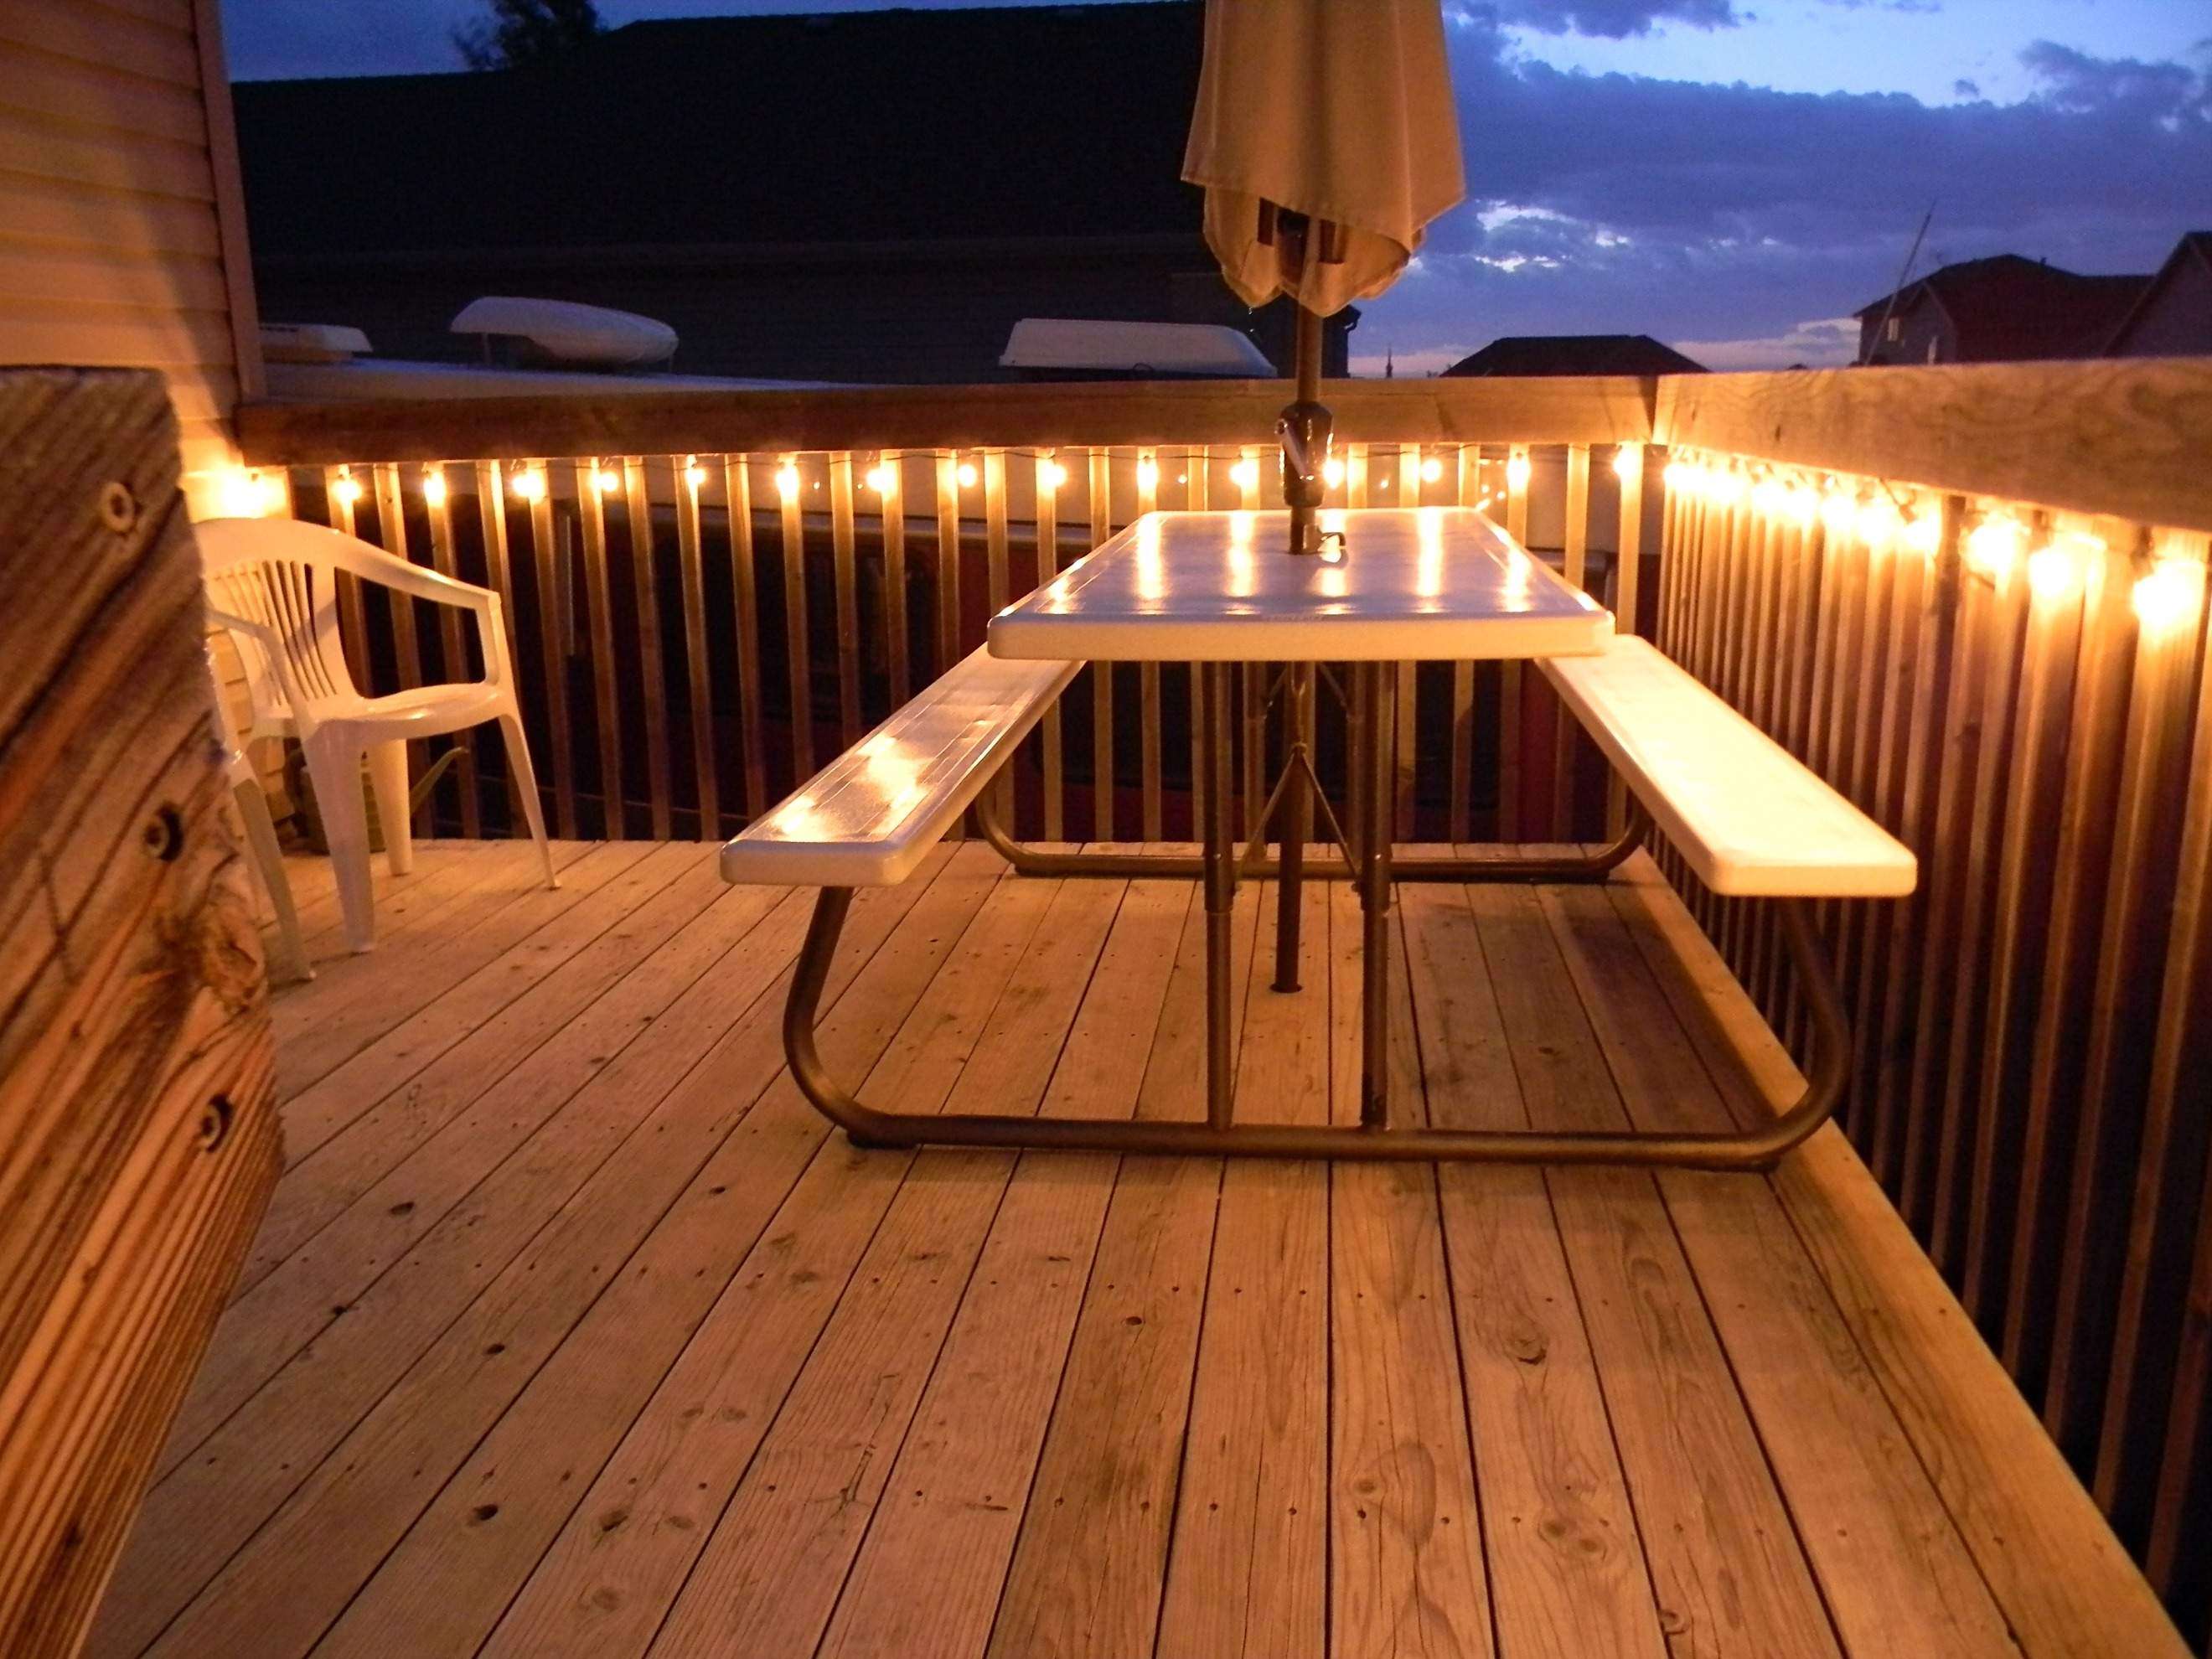 2018 Garden Ideas : Low Voltage Deck Lighting Ideas Some Tips To Get The Within Modern Low Voltage Deck Lighting (View 4 of 20)